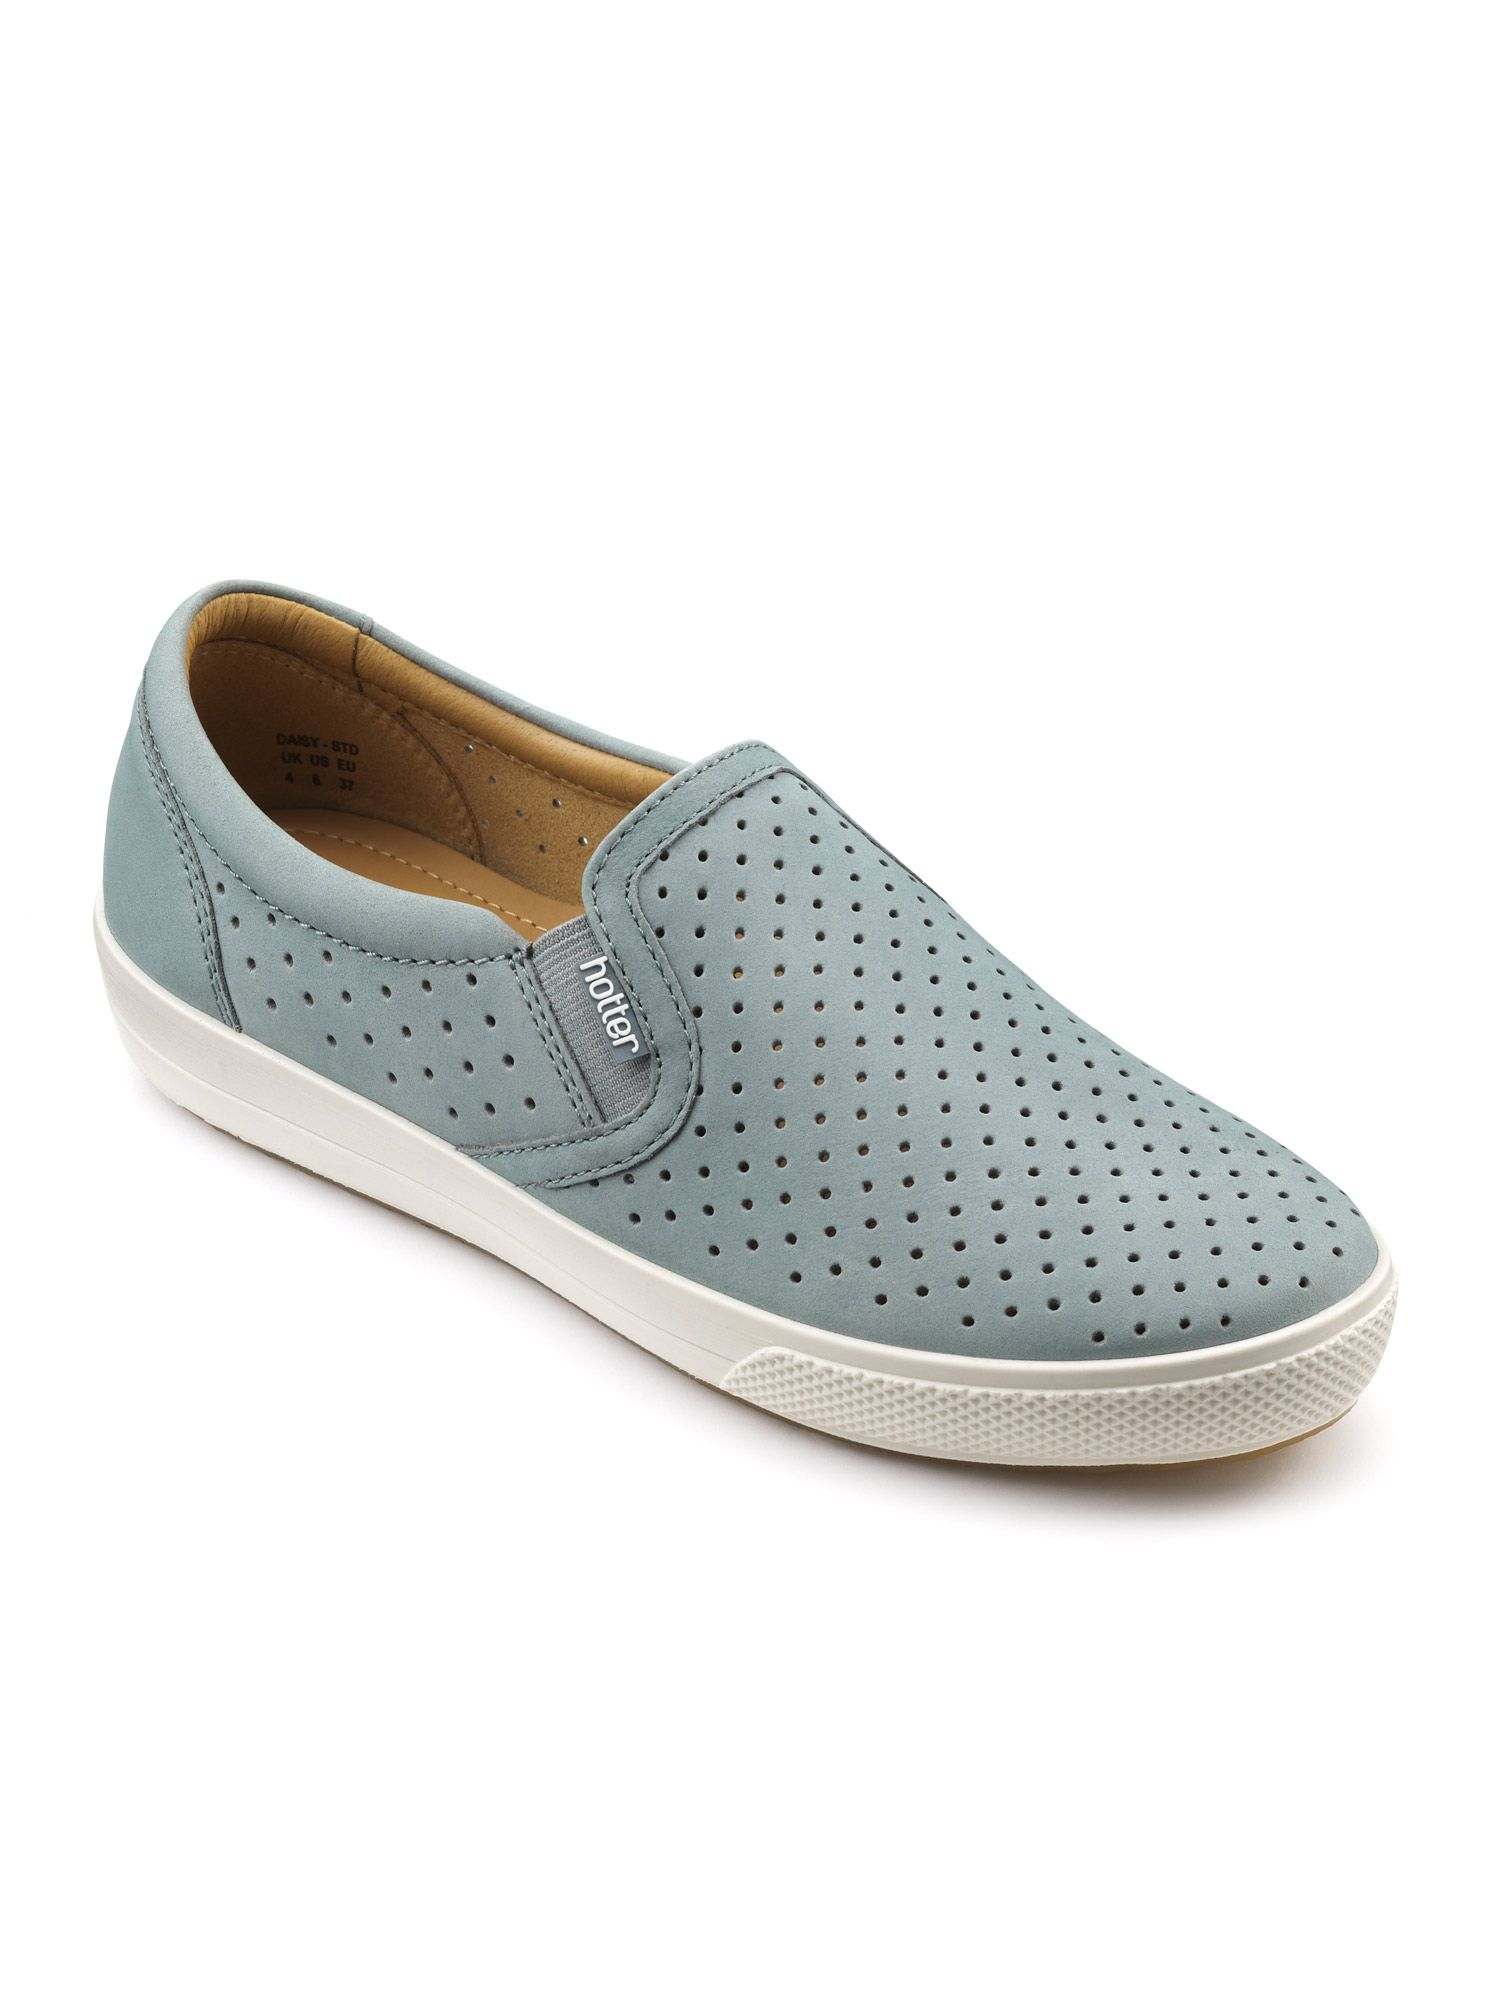 Hotter Daisy Casual Slip-on Shoes, Aqua